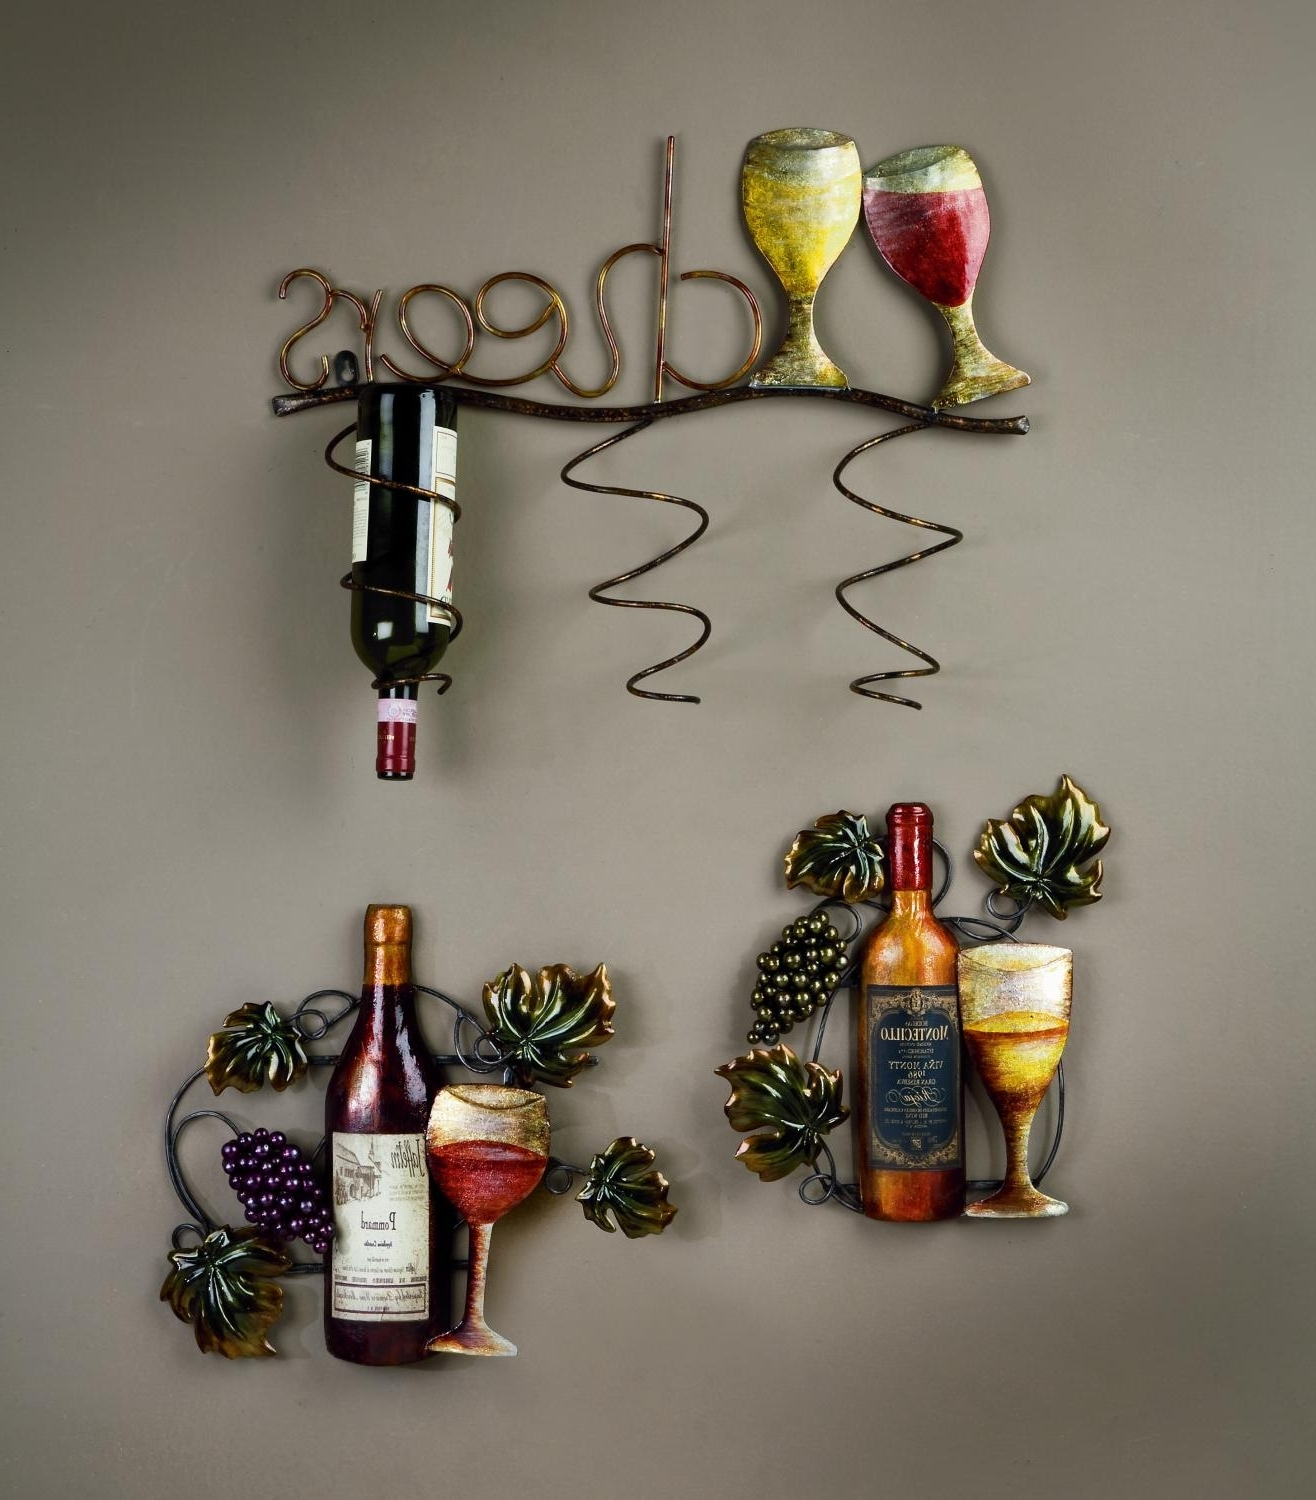 Wine And Grape Wall Art Throughout Most Recent I Would Love To Have This Wine Rack For The Home! (View 8 of 15)